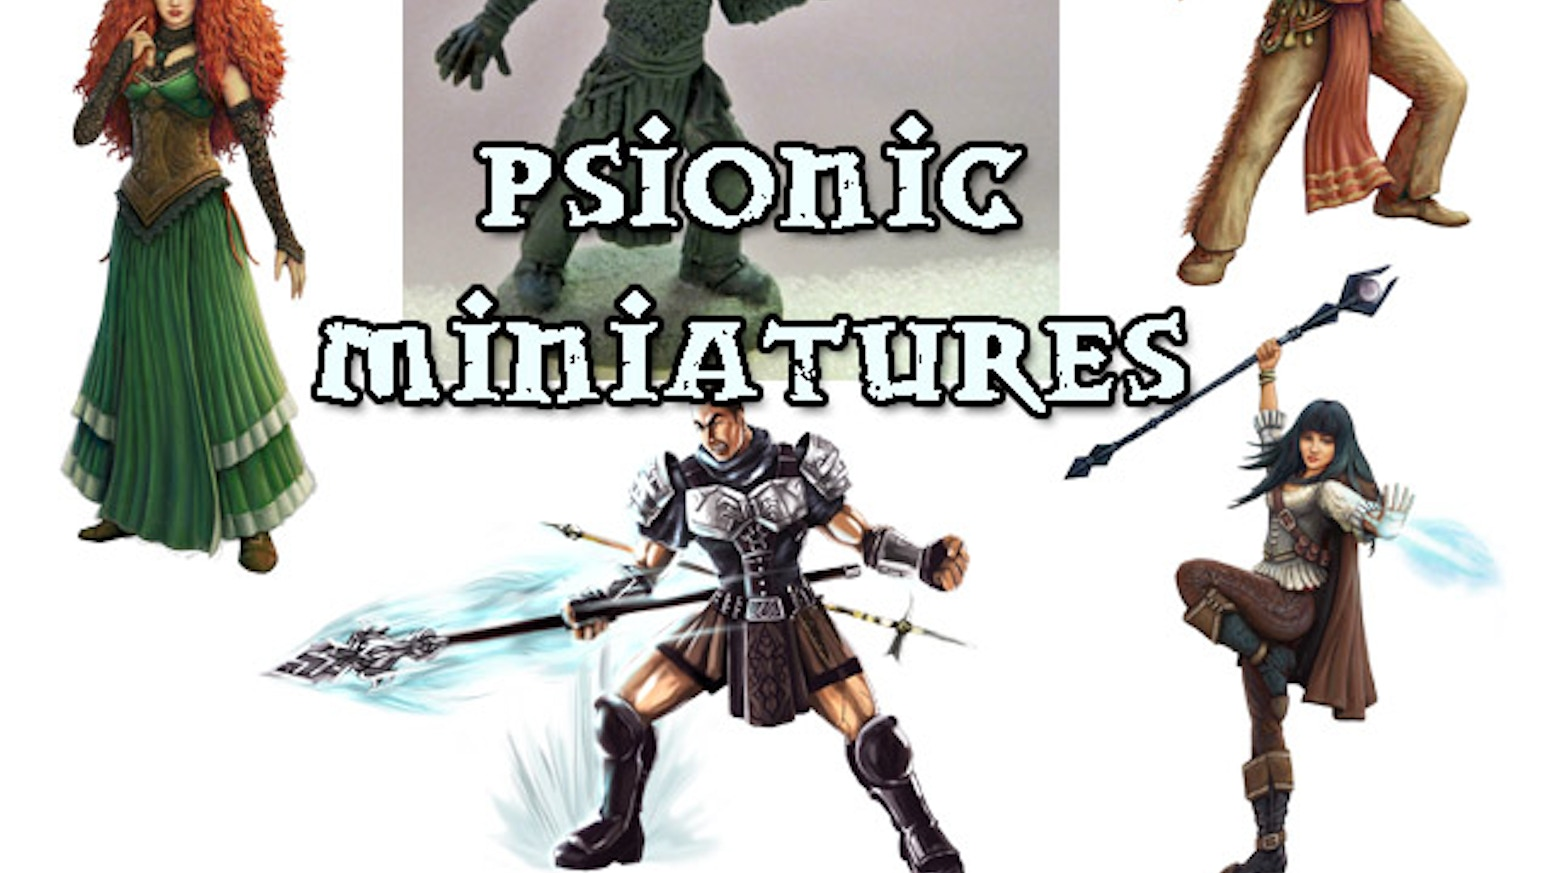 Dreamscarred Press wants to produce psionic miniatures for use with its RPG psionic ruleset by hiring professional miniature sculptors!